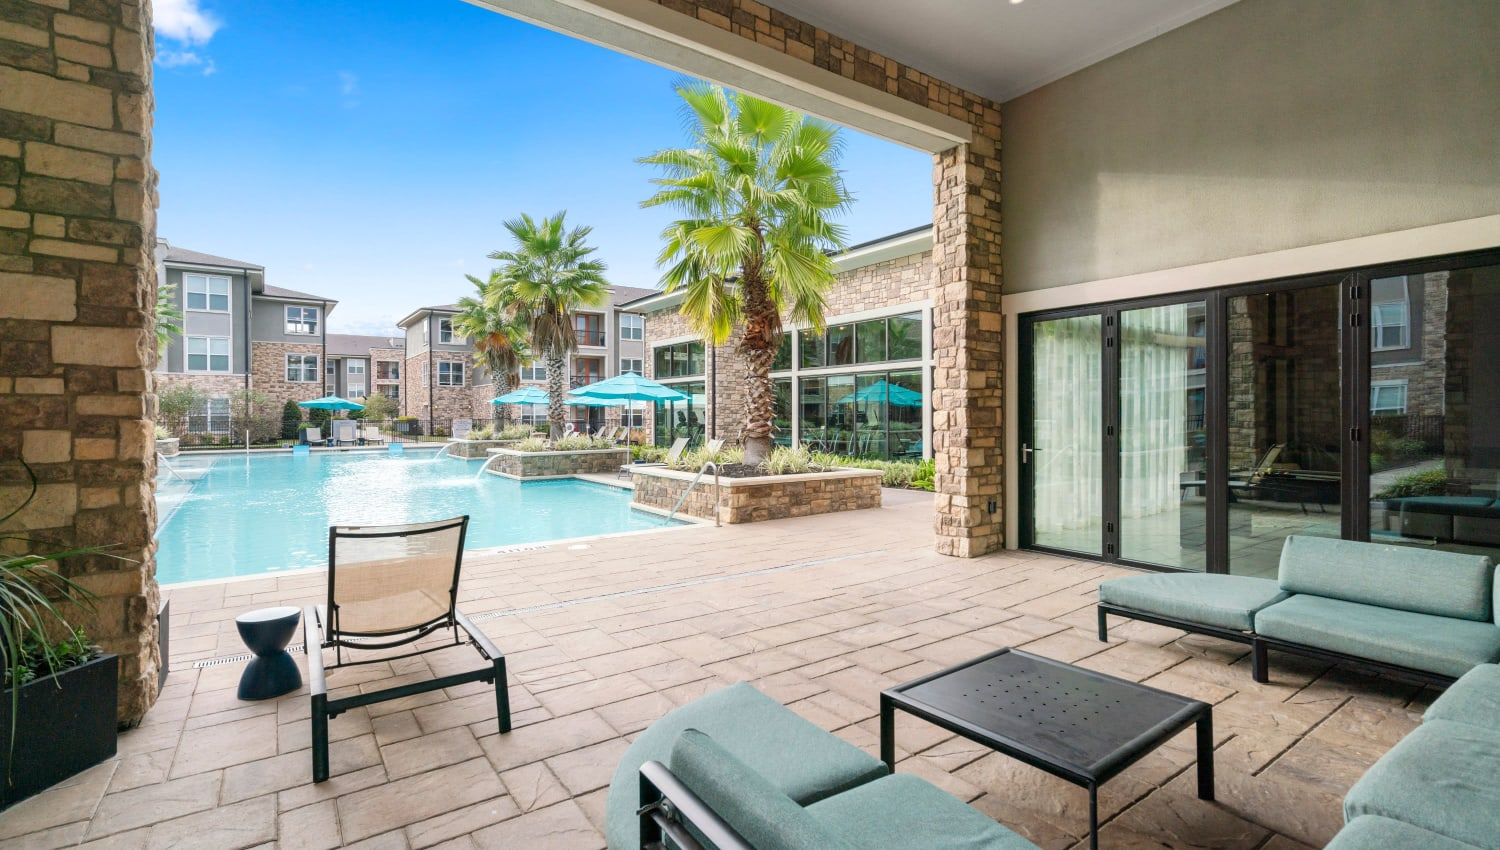 Recliner chair and sofa by pool at Olympus Grand Crossing in Katy, Texas